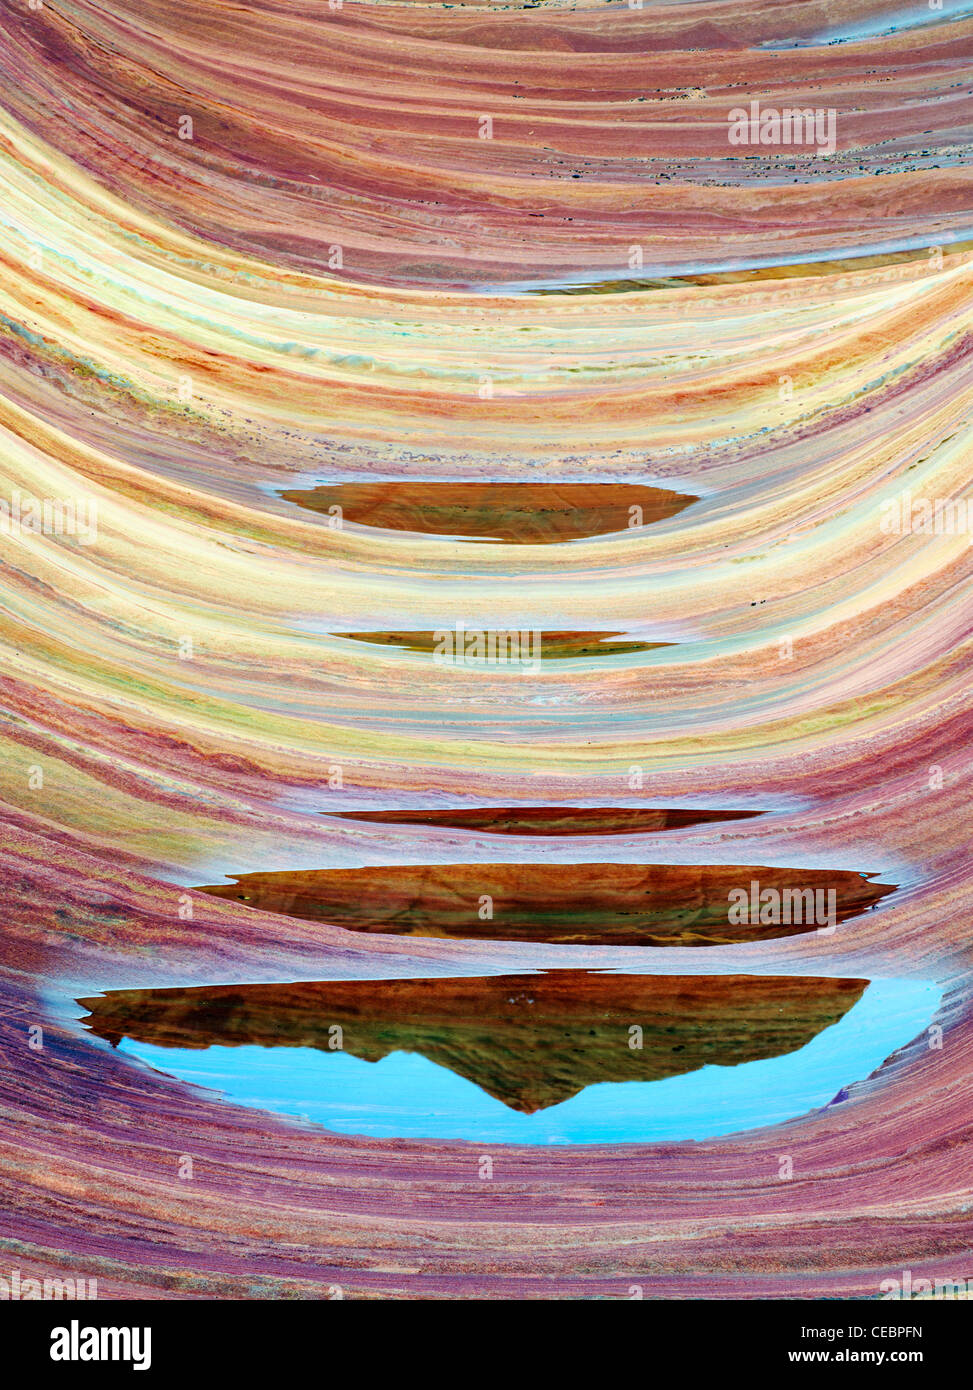 Sandtone formation and pool of water in North Coyote Buttes, The Wave. Paria Canyon Vermillion Cliffs Wilderness. - Stock Image